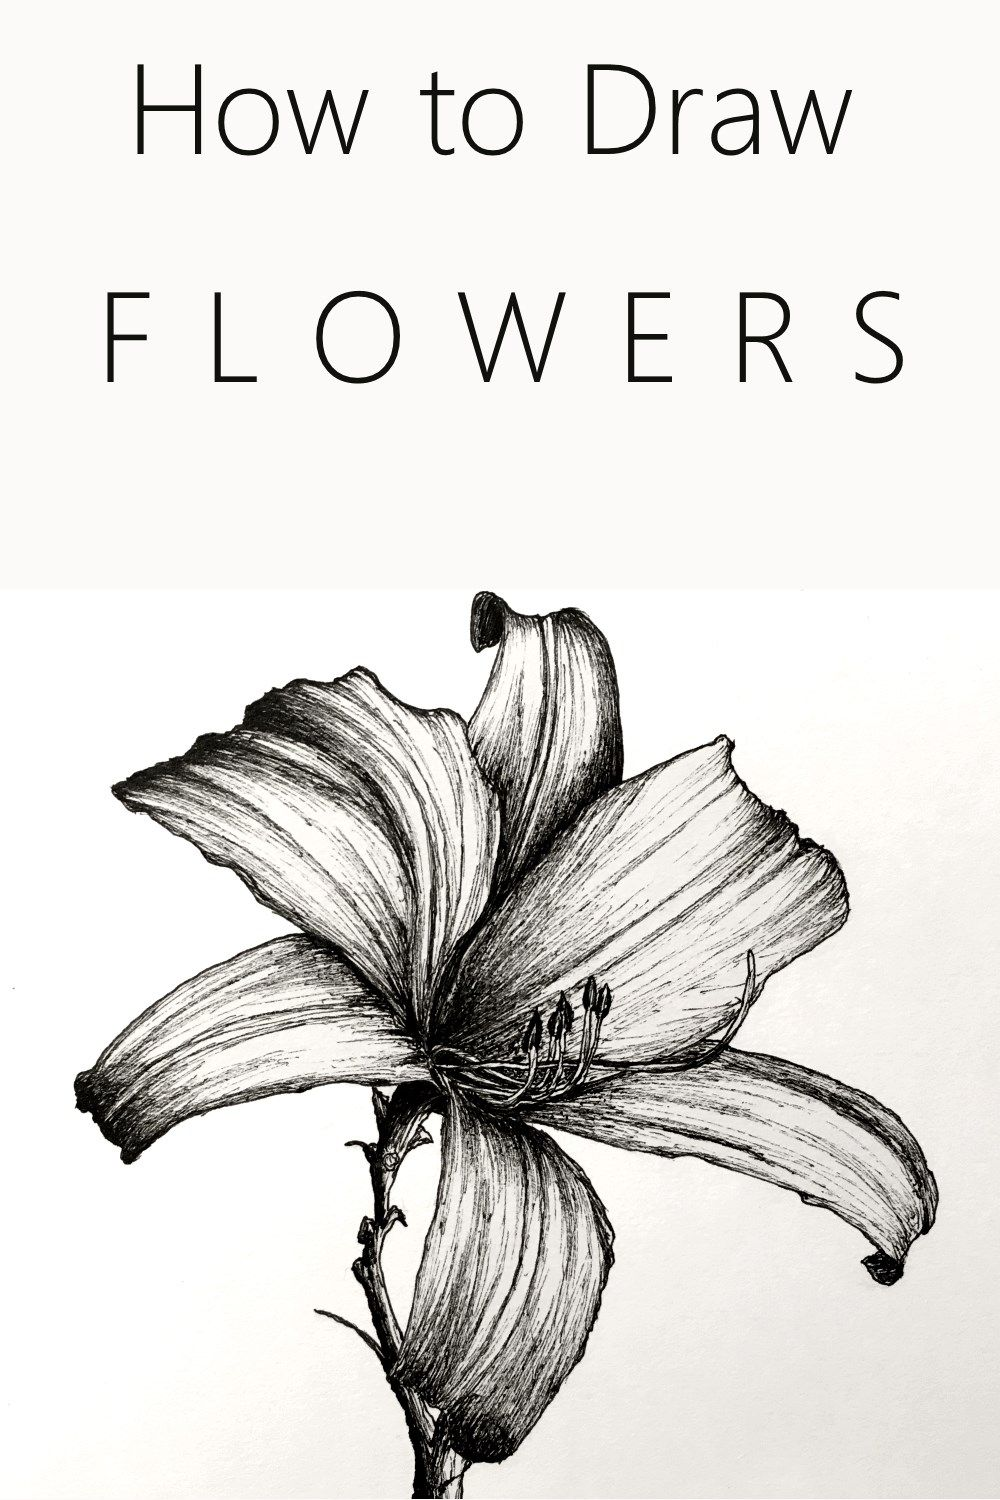 How to Draw Flowers Flower drawing, Drawings, Beauty